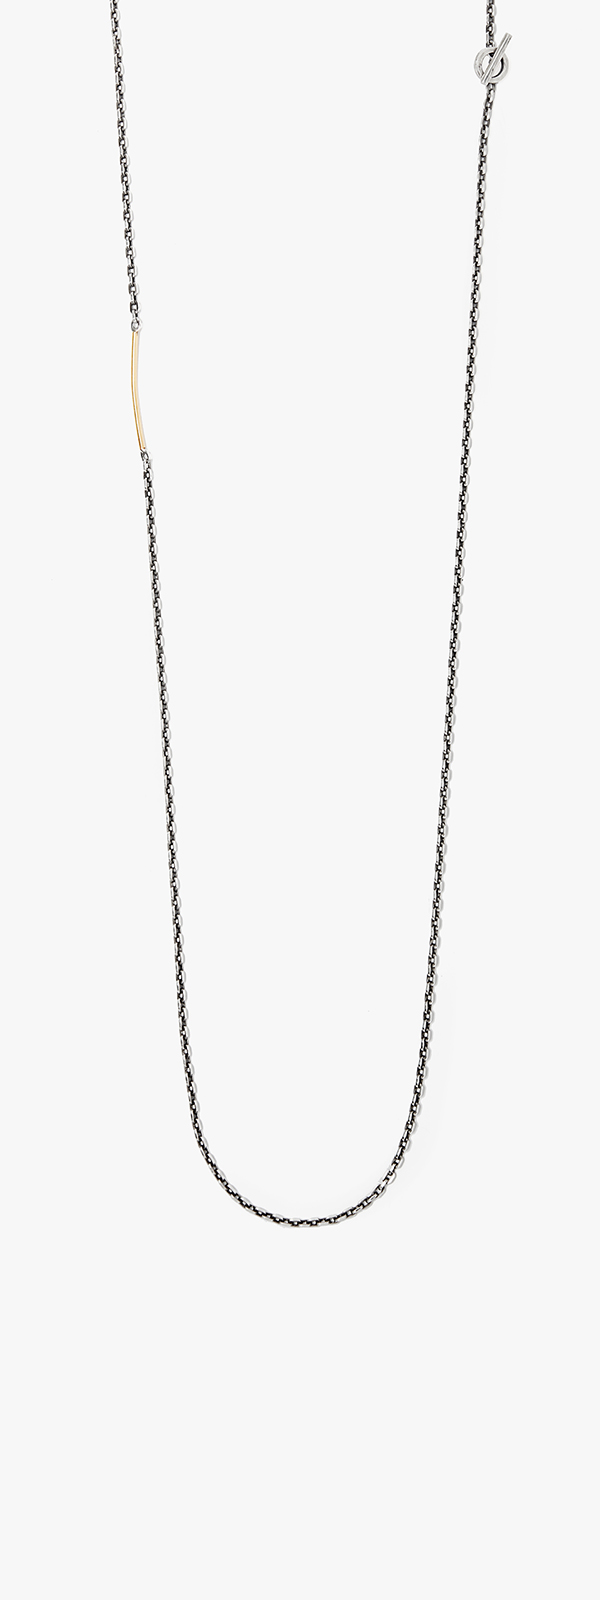 Image of Sterling Cable Chain w/ 18K Gold Bar Necklace